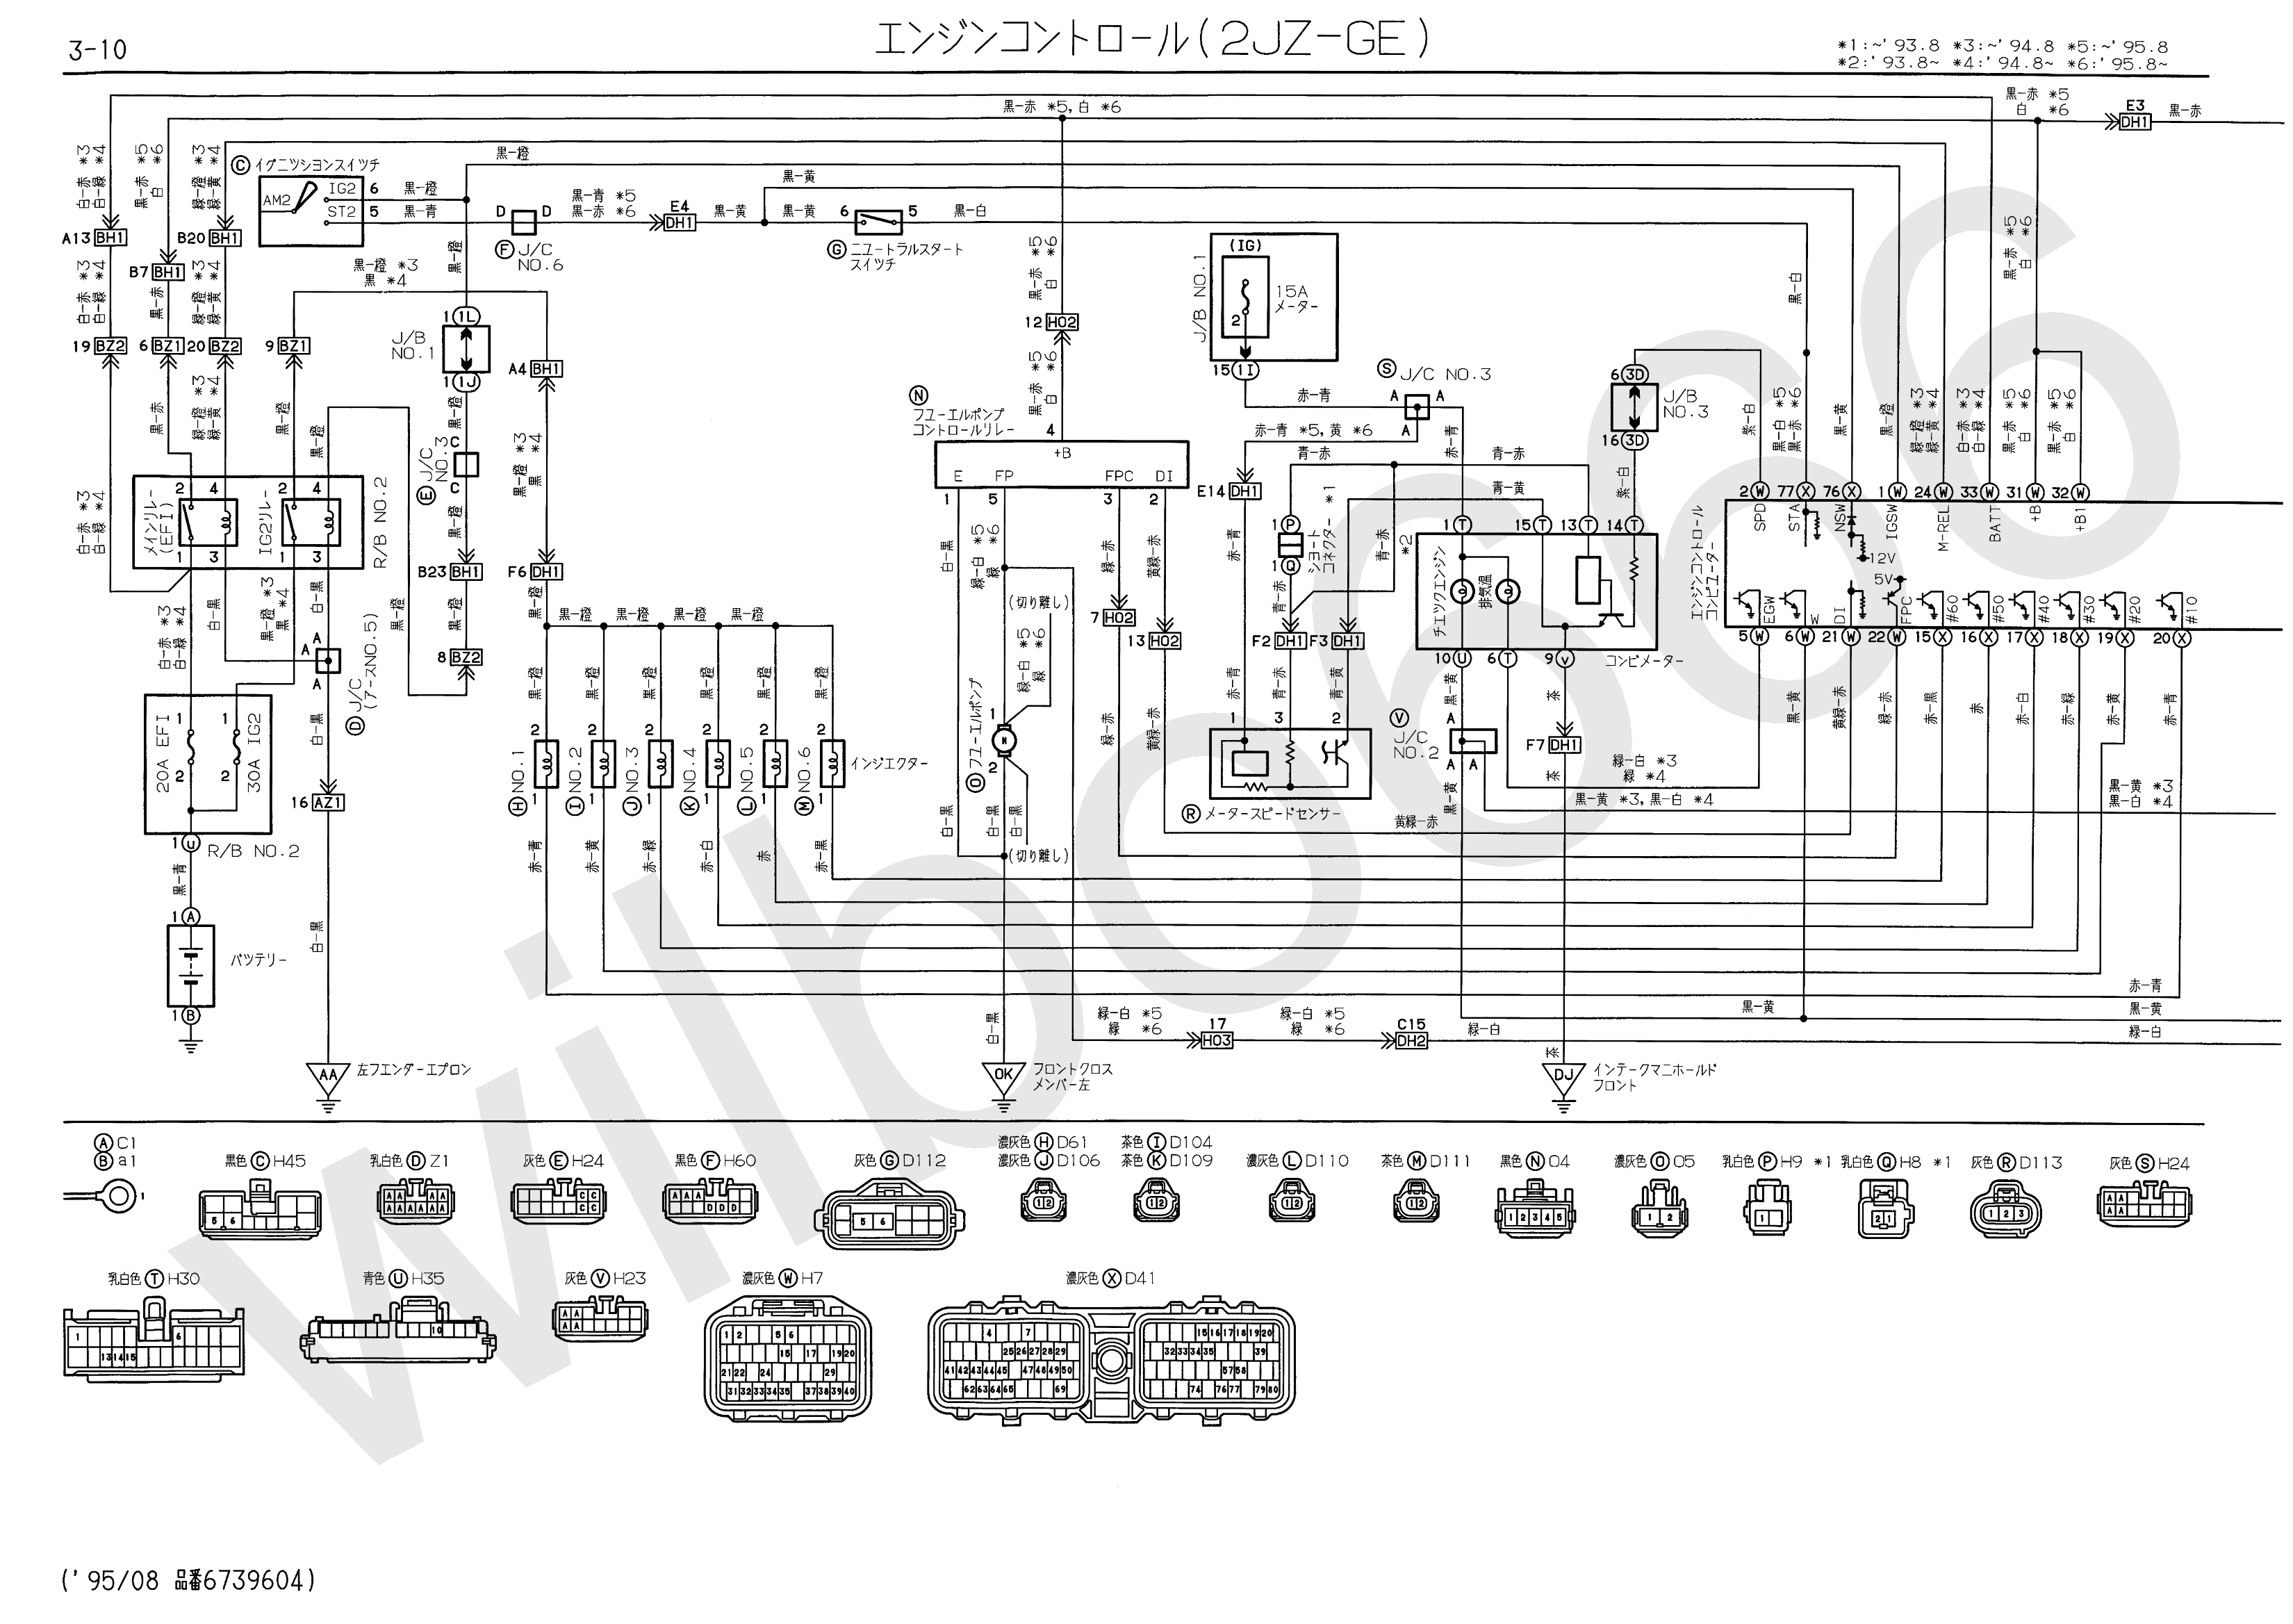 JZS14%23%2C UZS14%23 Electrical Wiring Diagram 6739604 3 10 wilbo666 2jz ge jzs147 engine wiring ge wiring diagrams at bakdesigns.co